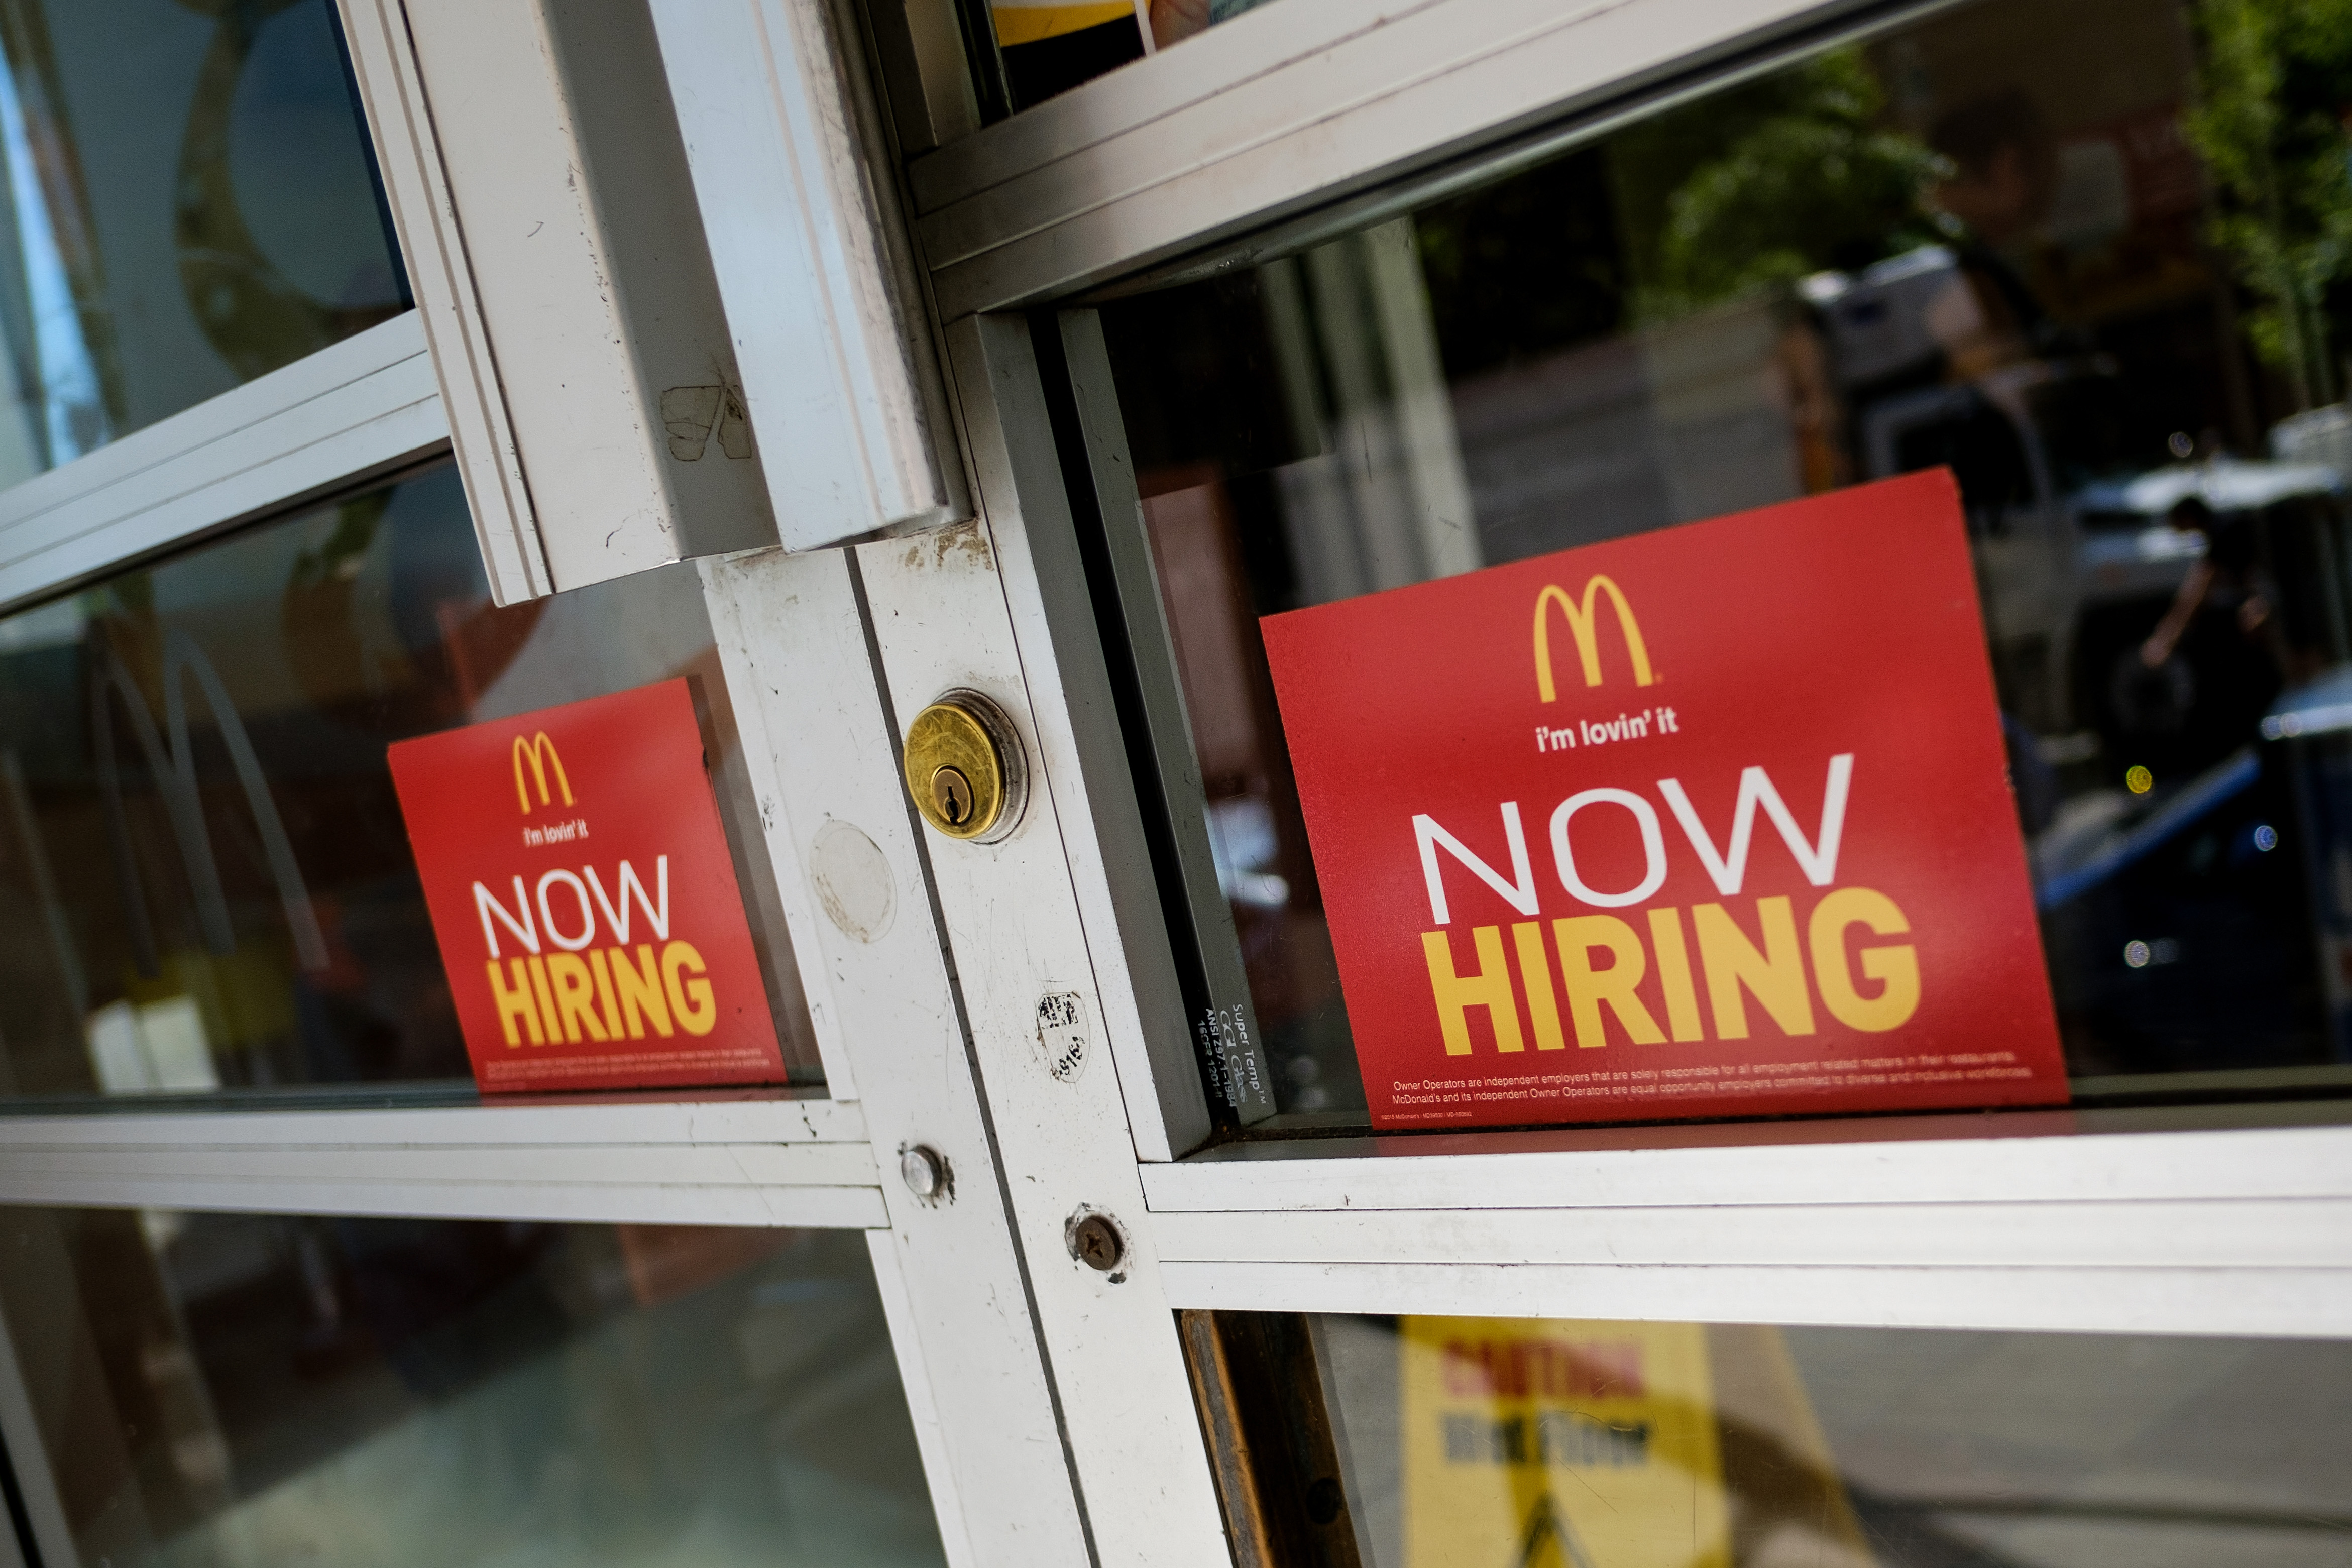 U.S. Unemployment Rate Drops To 4.3 Percent, Lowest Level In 16 Years